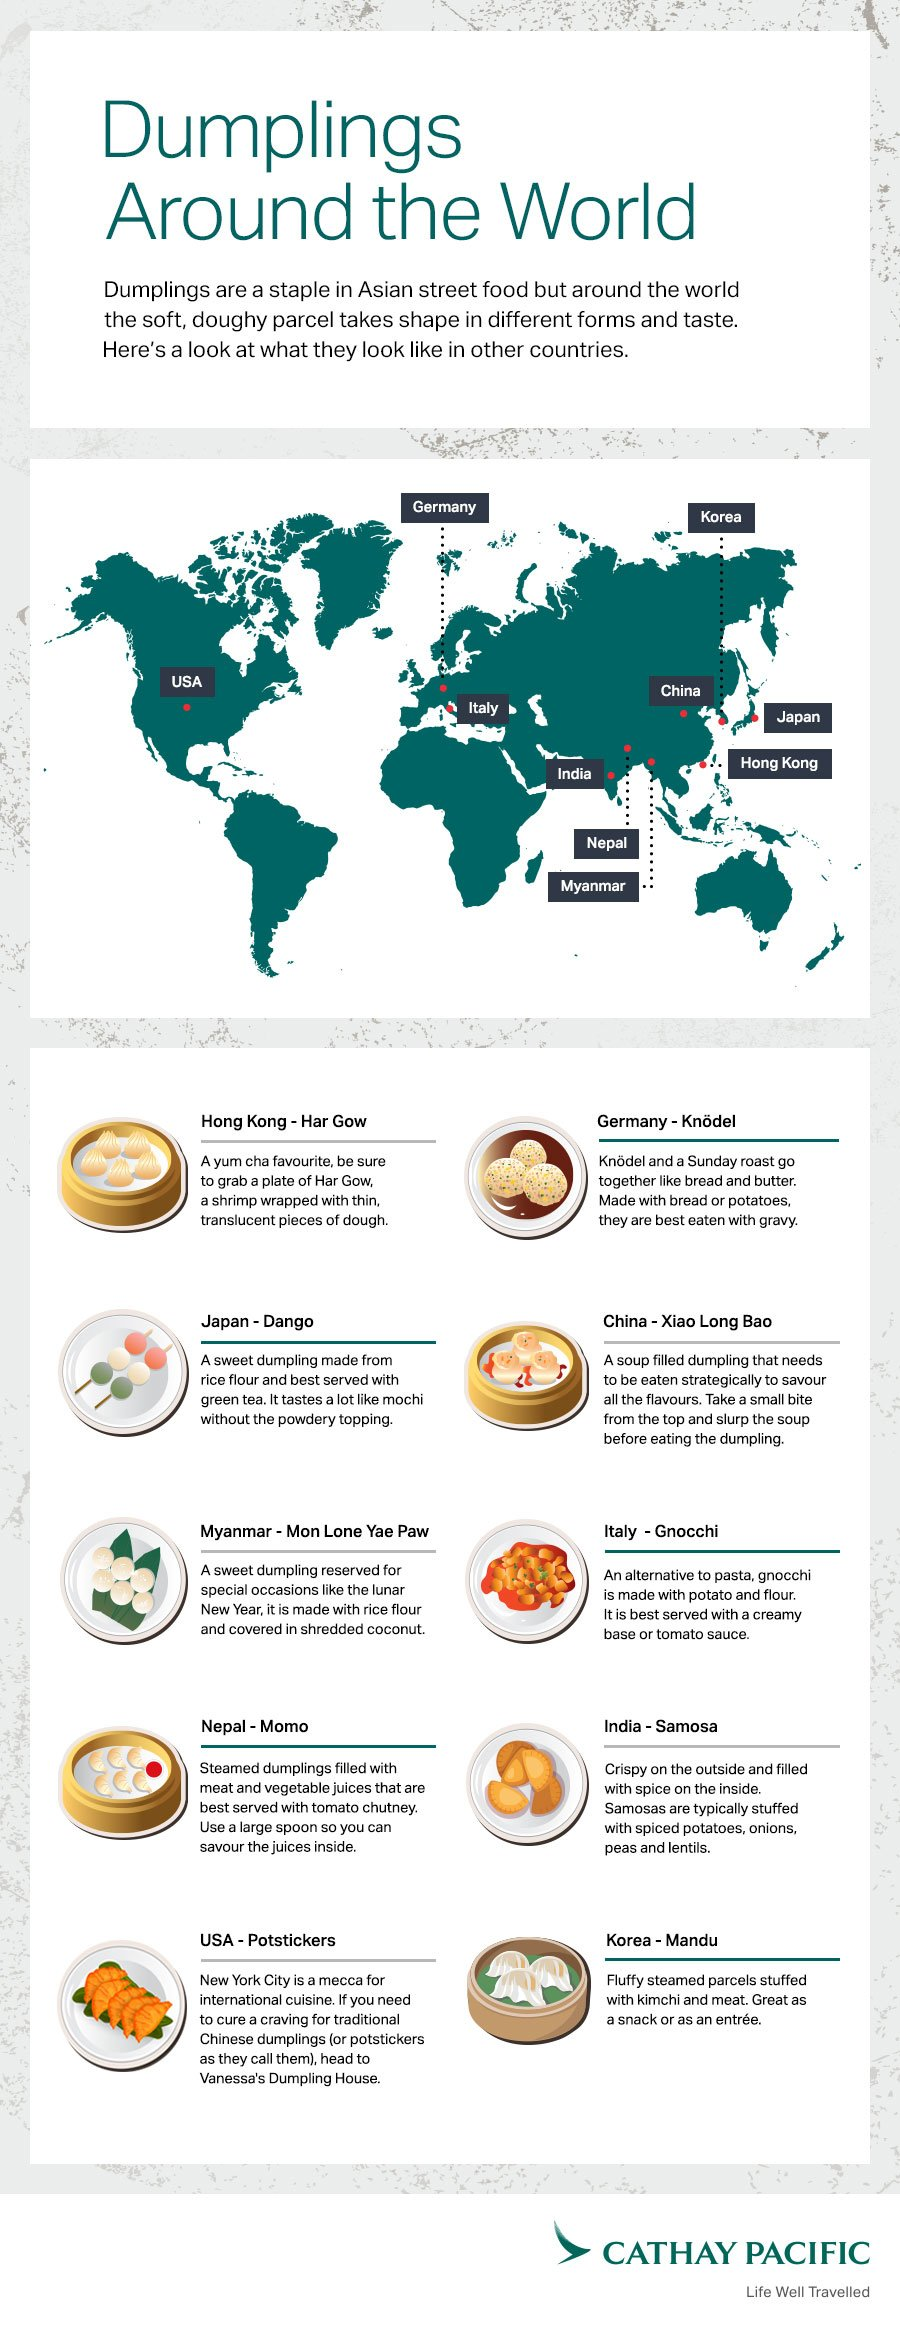 Dumplings from around the world Cathay Pacific